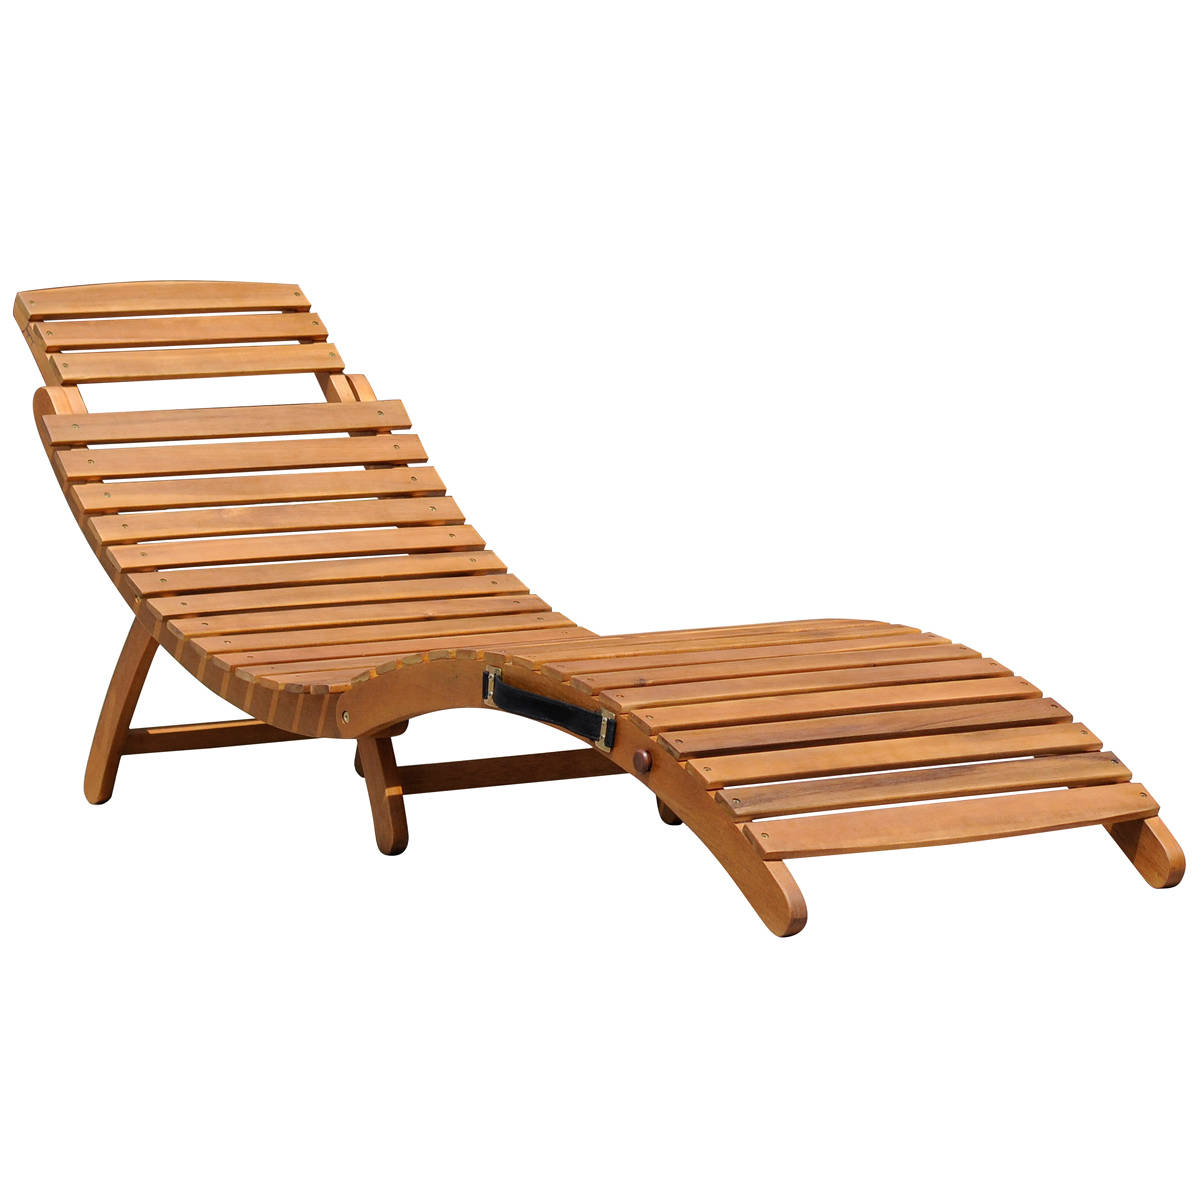 sun loungers large-folding-wooden-curved-sun-lounger YBENFVH